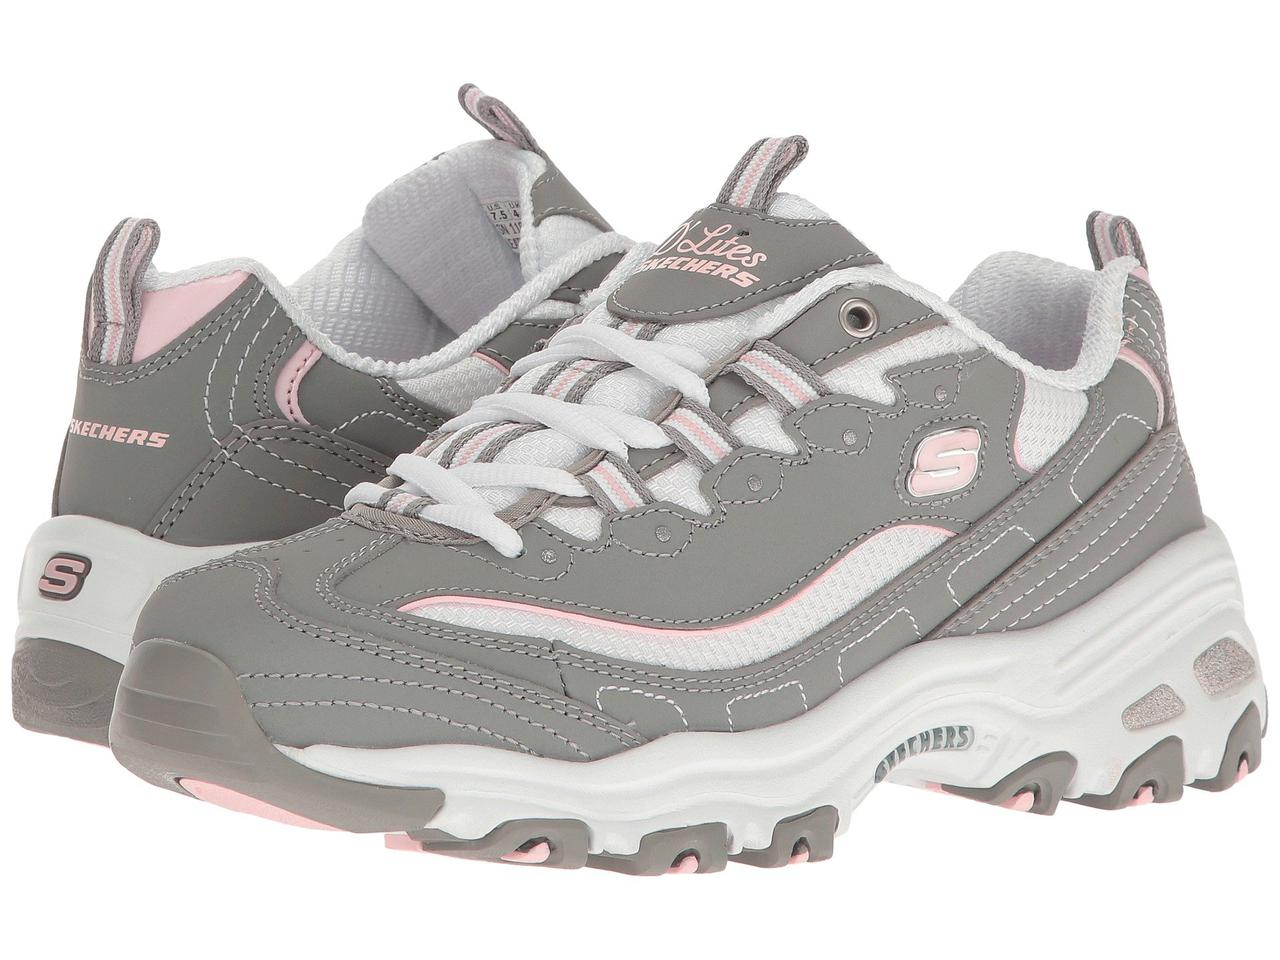 Кроссовки SKECHERS D Lites - Biggest Fan Gray White - Оригинал - Интернет  магазин 1972a2910fd